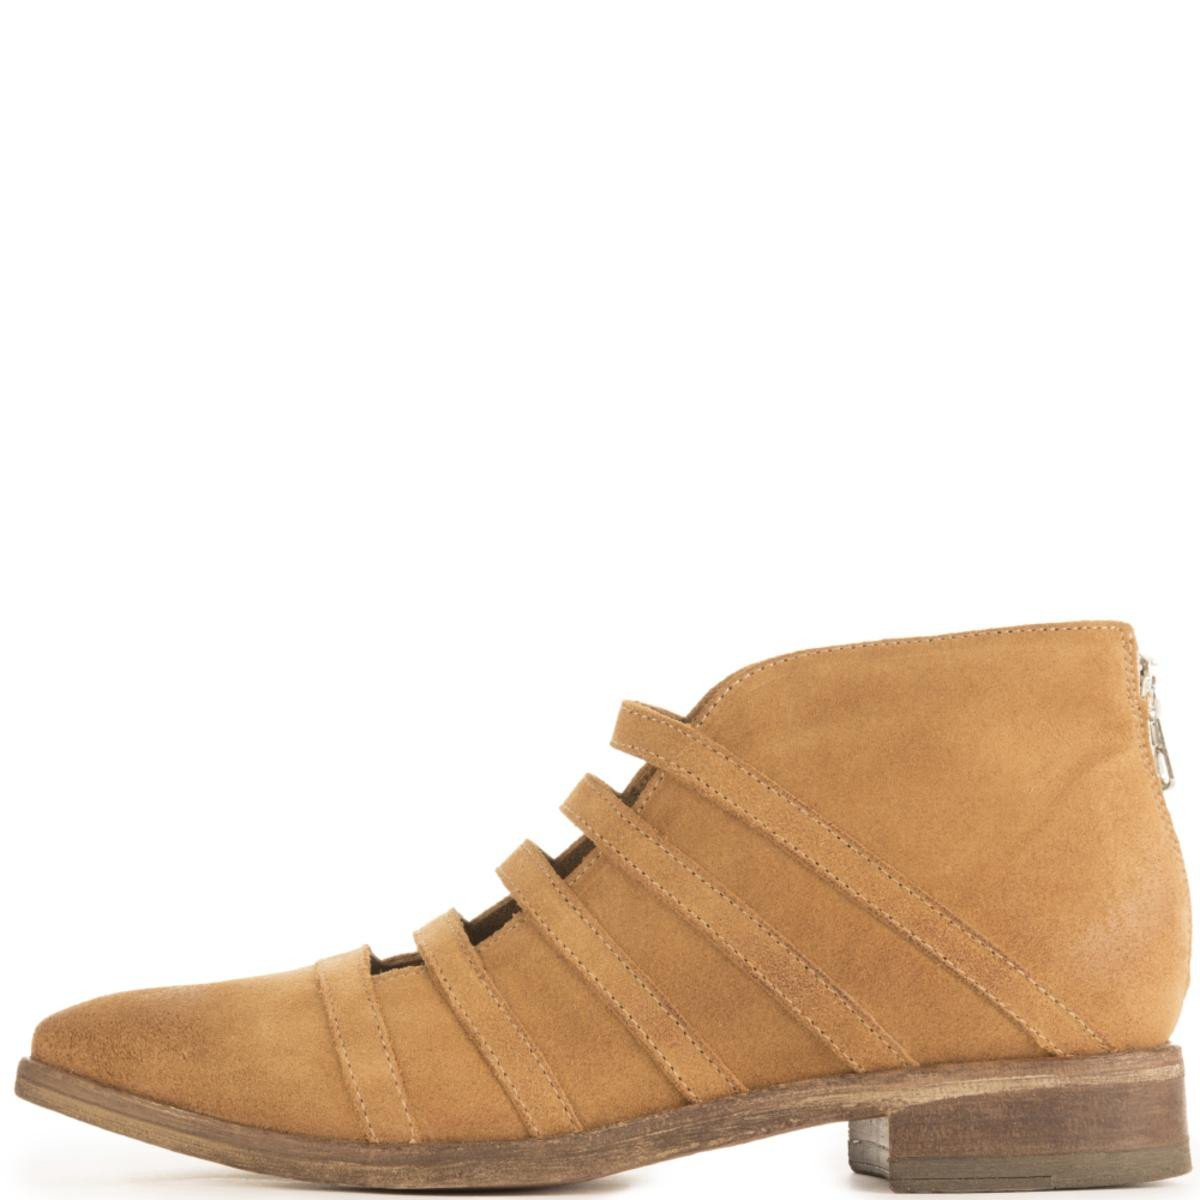 Free People for Women: Swept Away Tan Ankle Booties